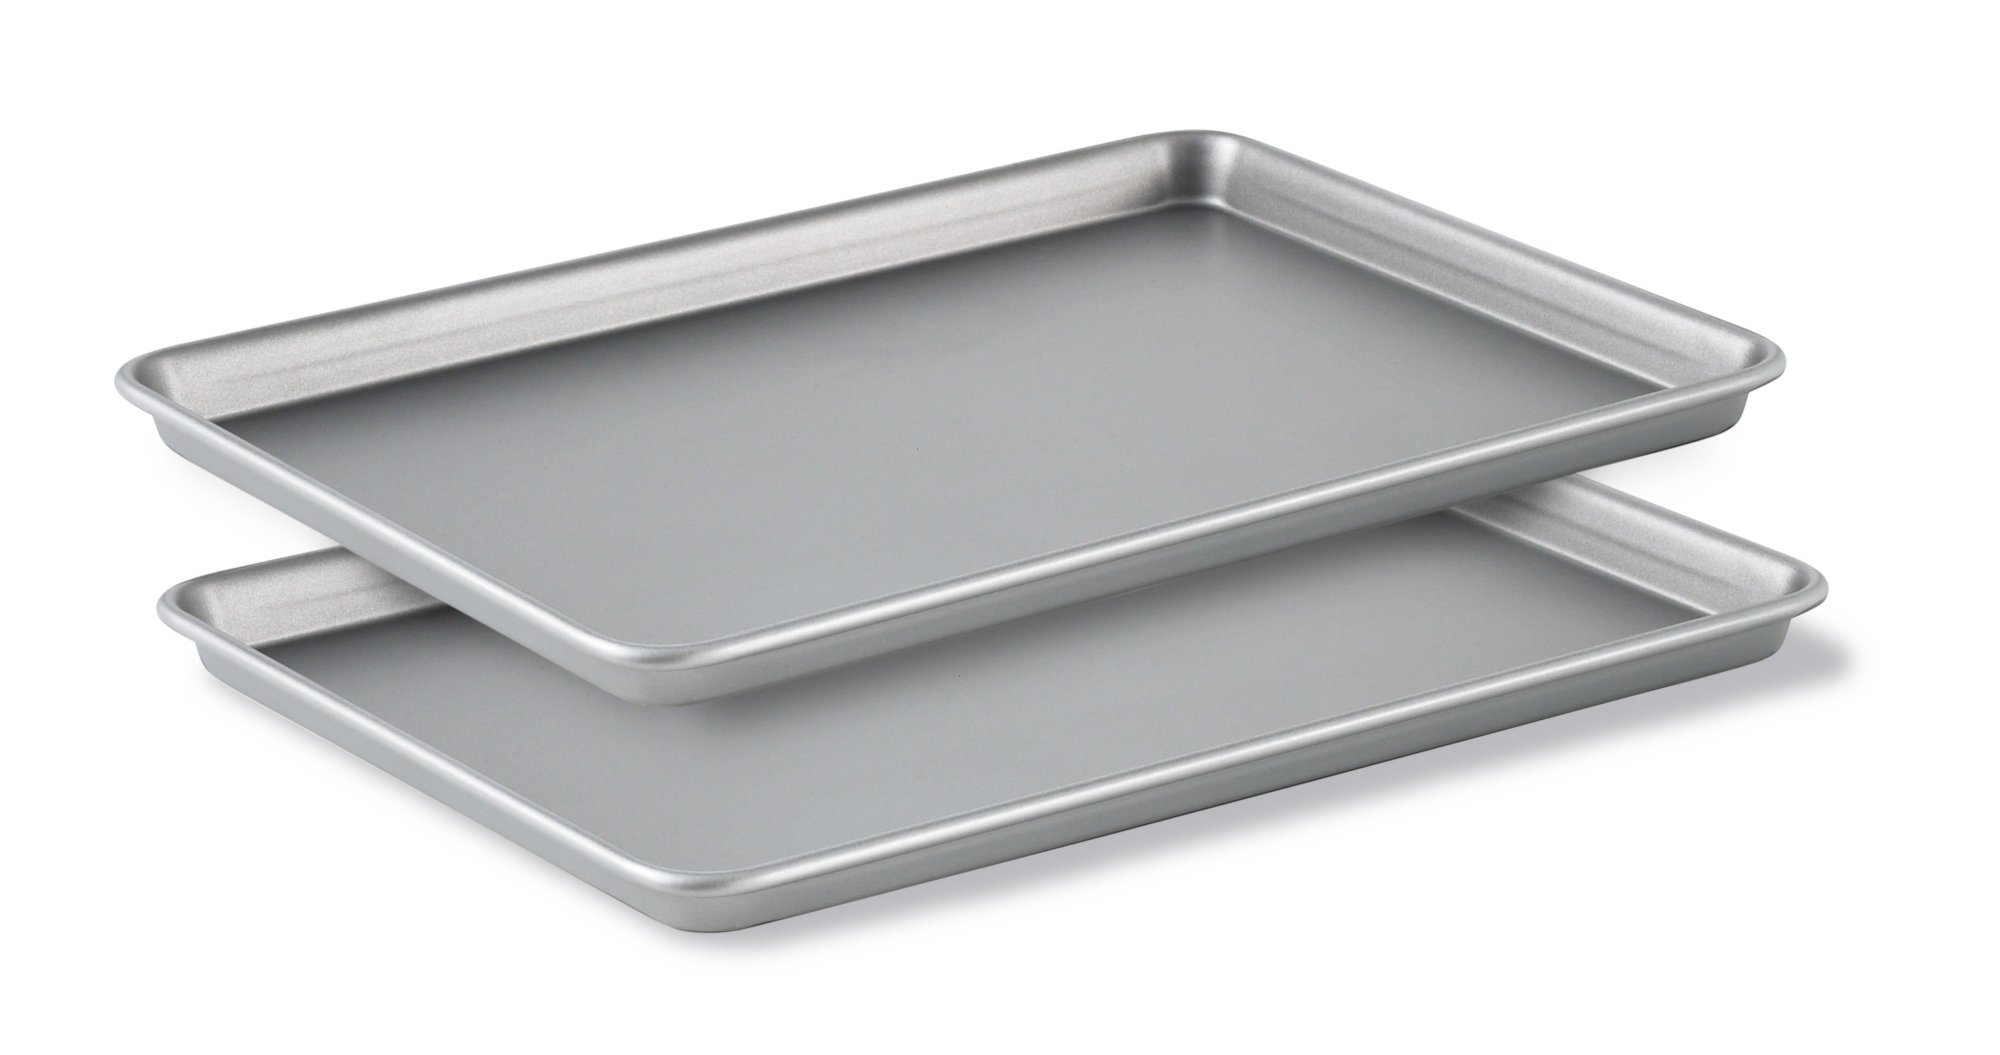 Calphalon Nonstick Bakeware 2-pc. Baking Sheet Set